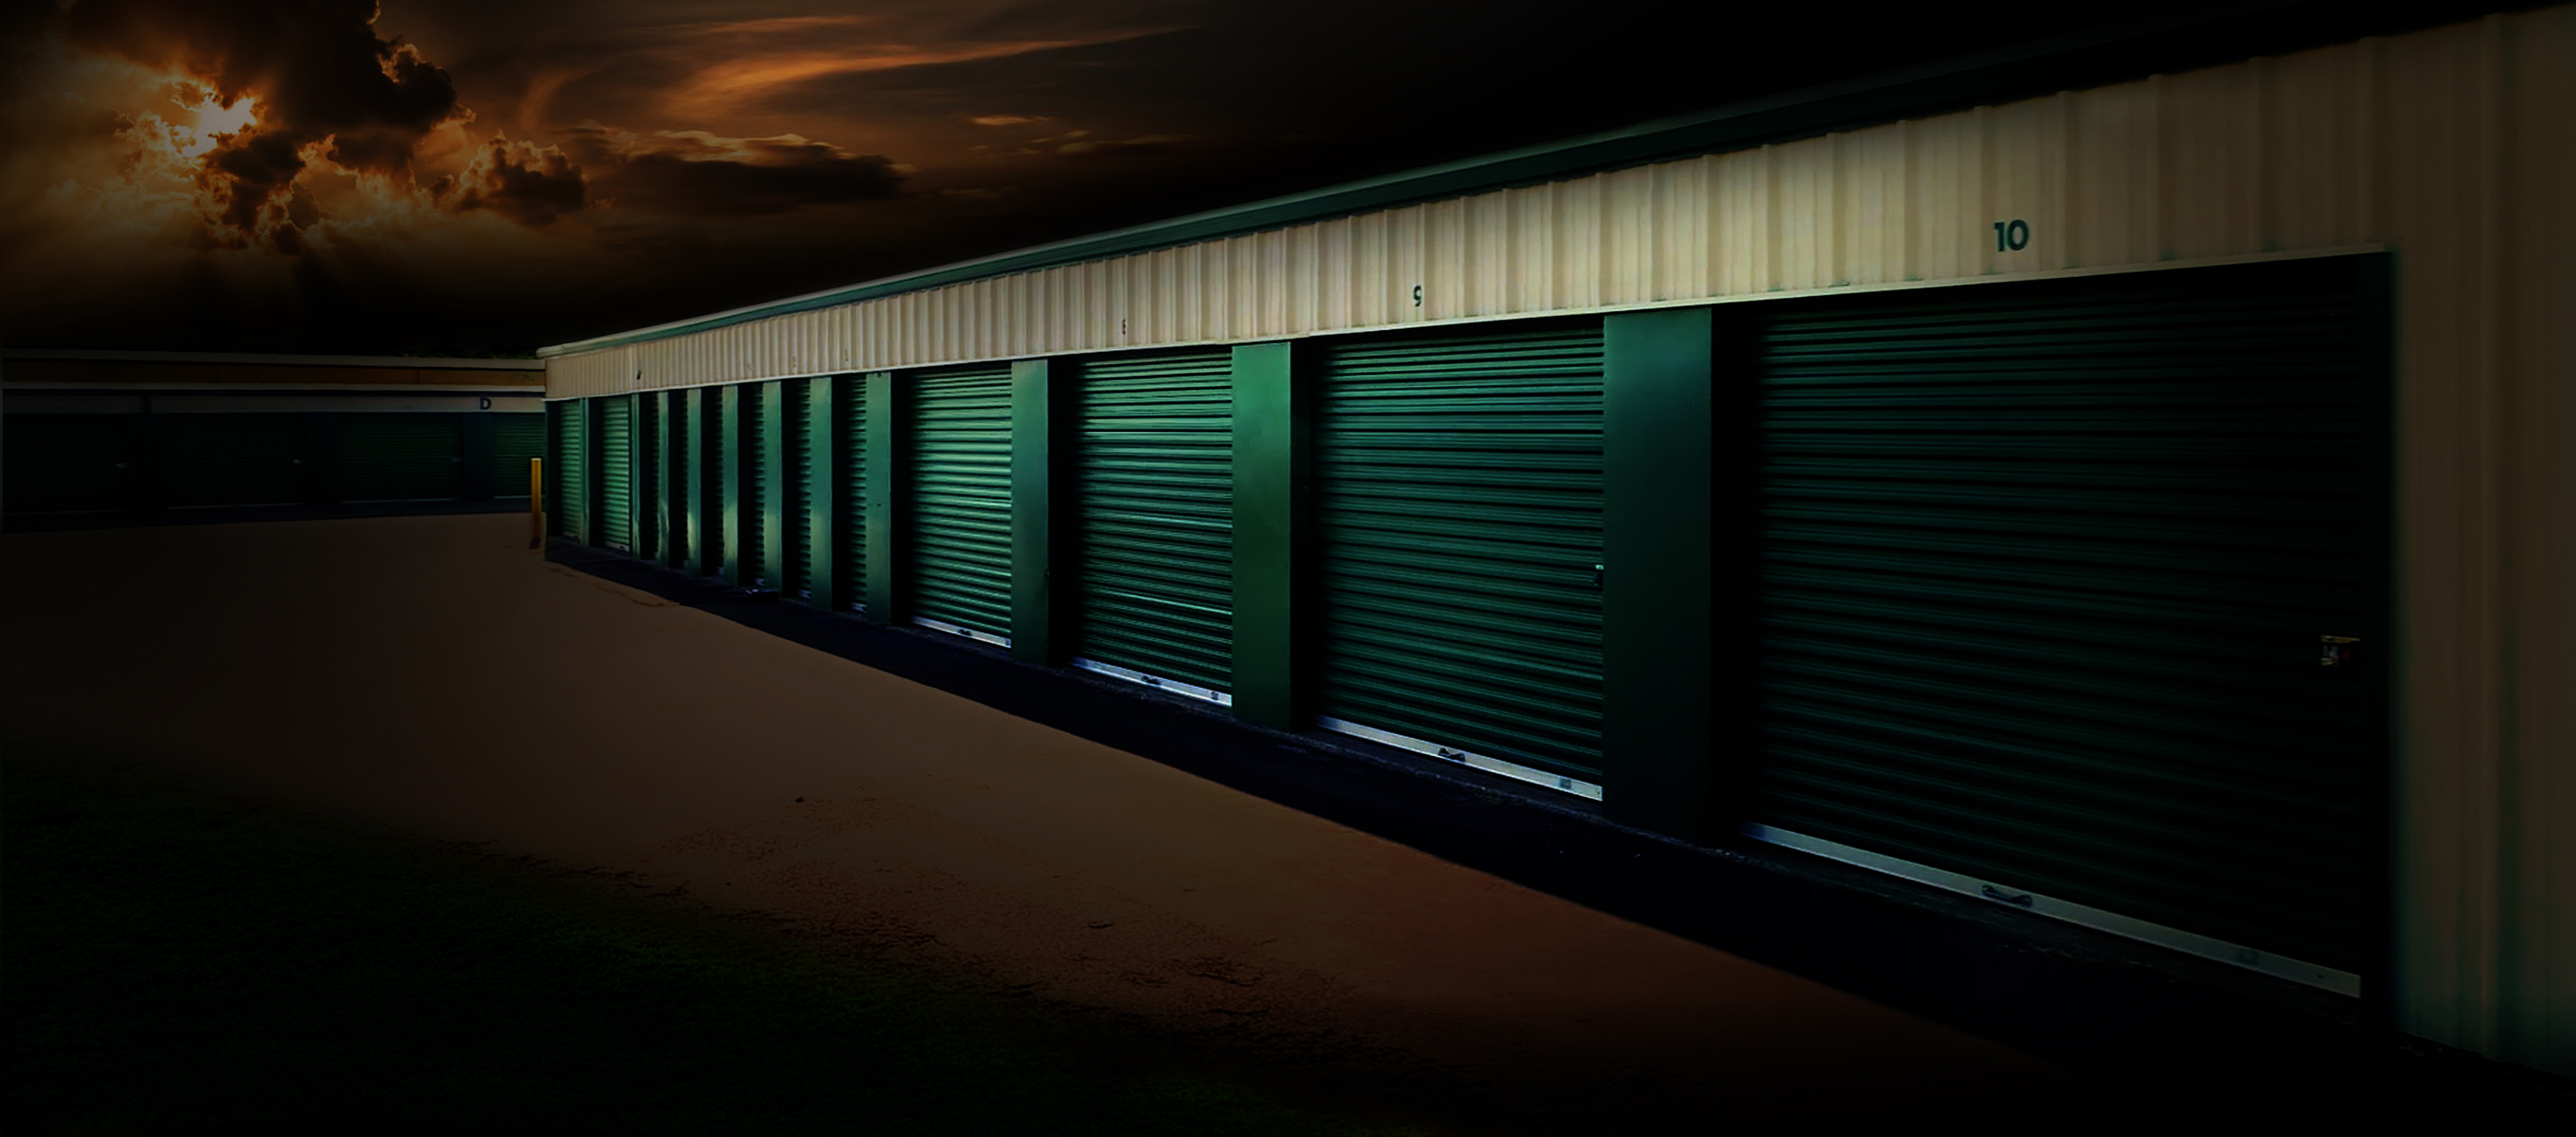 We are the largest local provider of self-storage units in the tri-county area